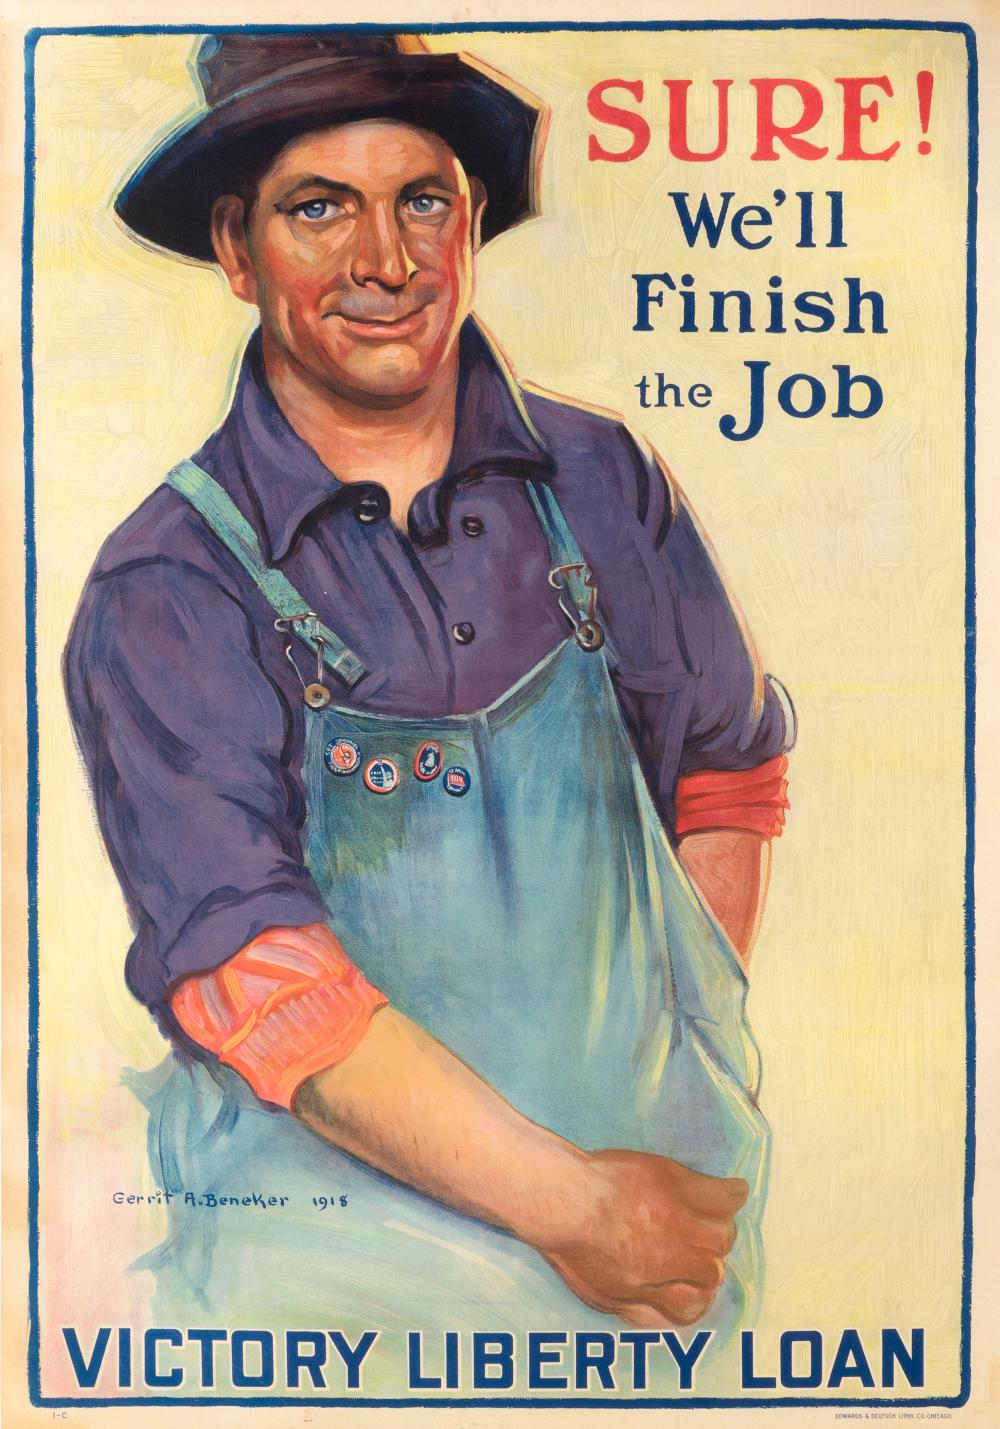 """""""SURE! WE'LL FINISH THE JOB"""" WORLD WAR I POSTER By Gerrit A. Beneker for the Victory Liberty Loan, published by Edwards & Deutsch Li.."""